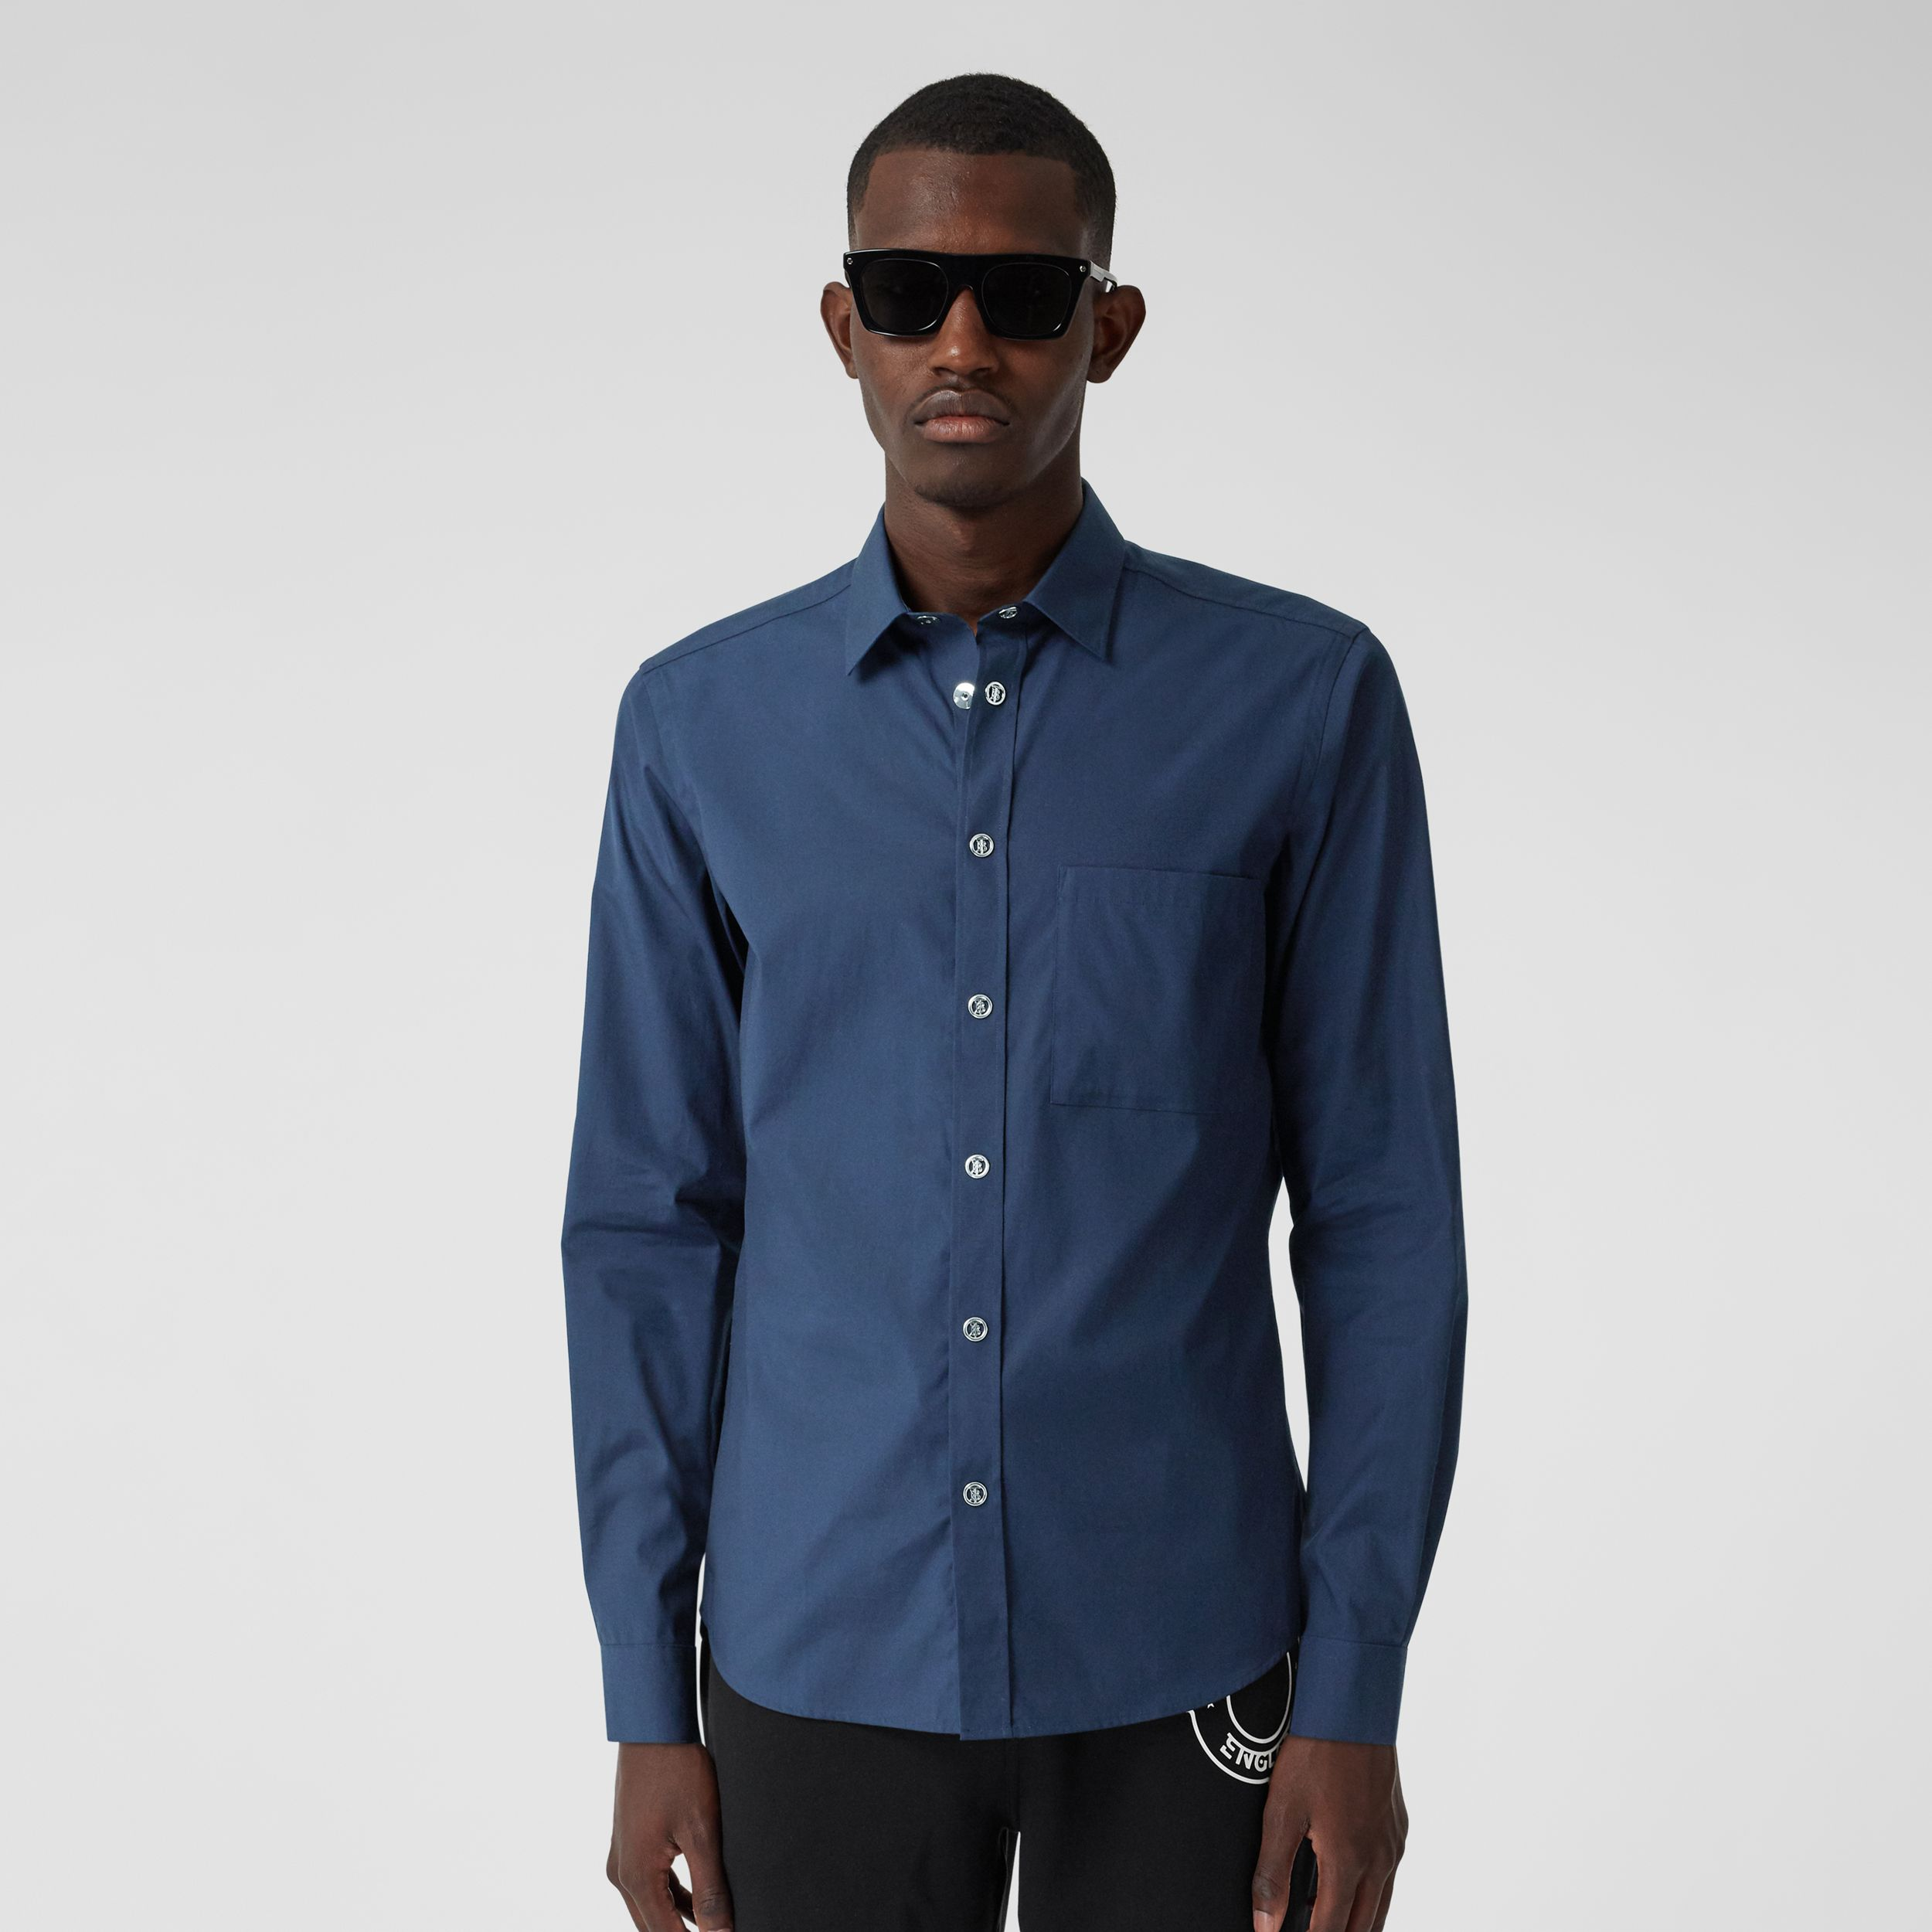 Monogram Motif Stretch Cotton Shirt in Navy - Men | Burberry Australia - 1